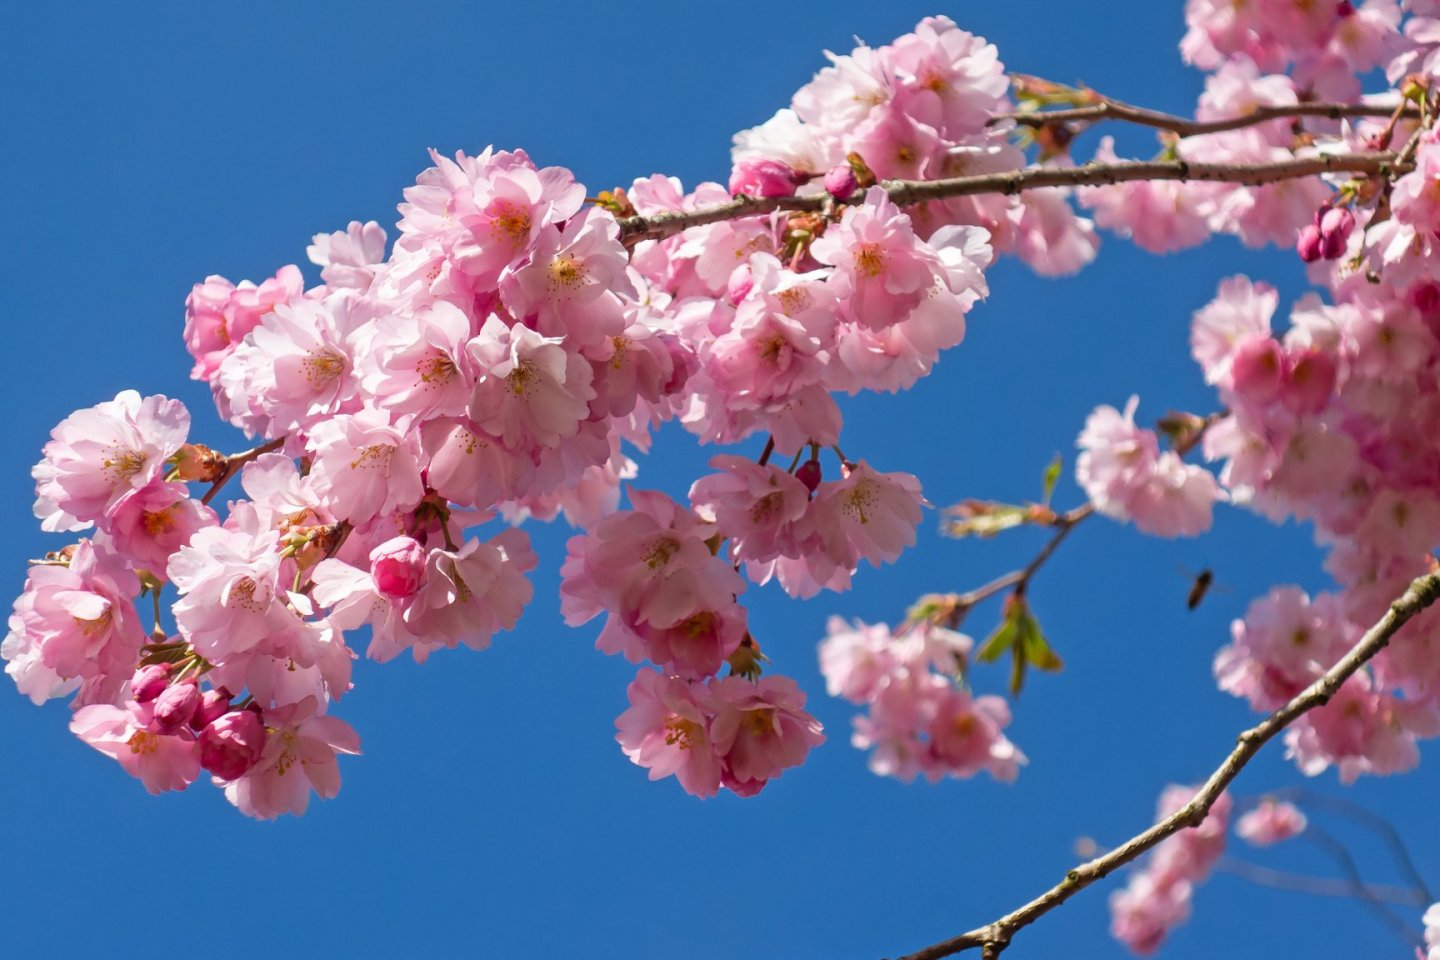 Double cherry blossoms in their trademark fluffy style